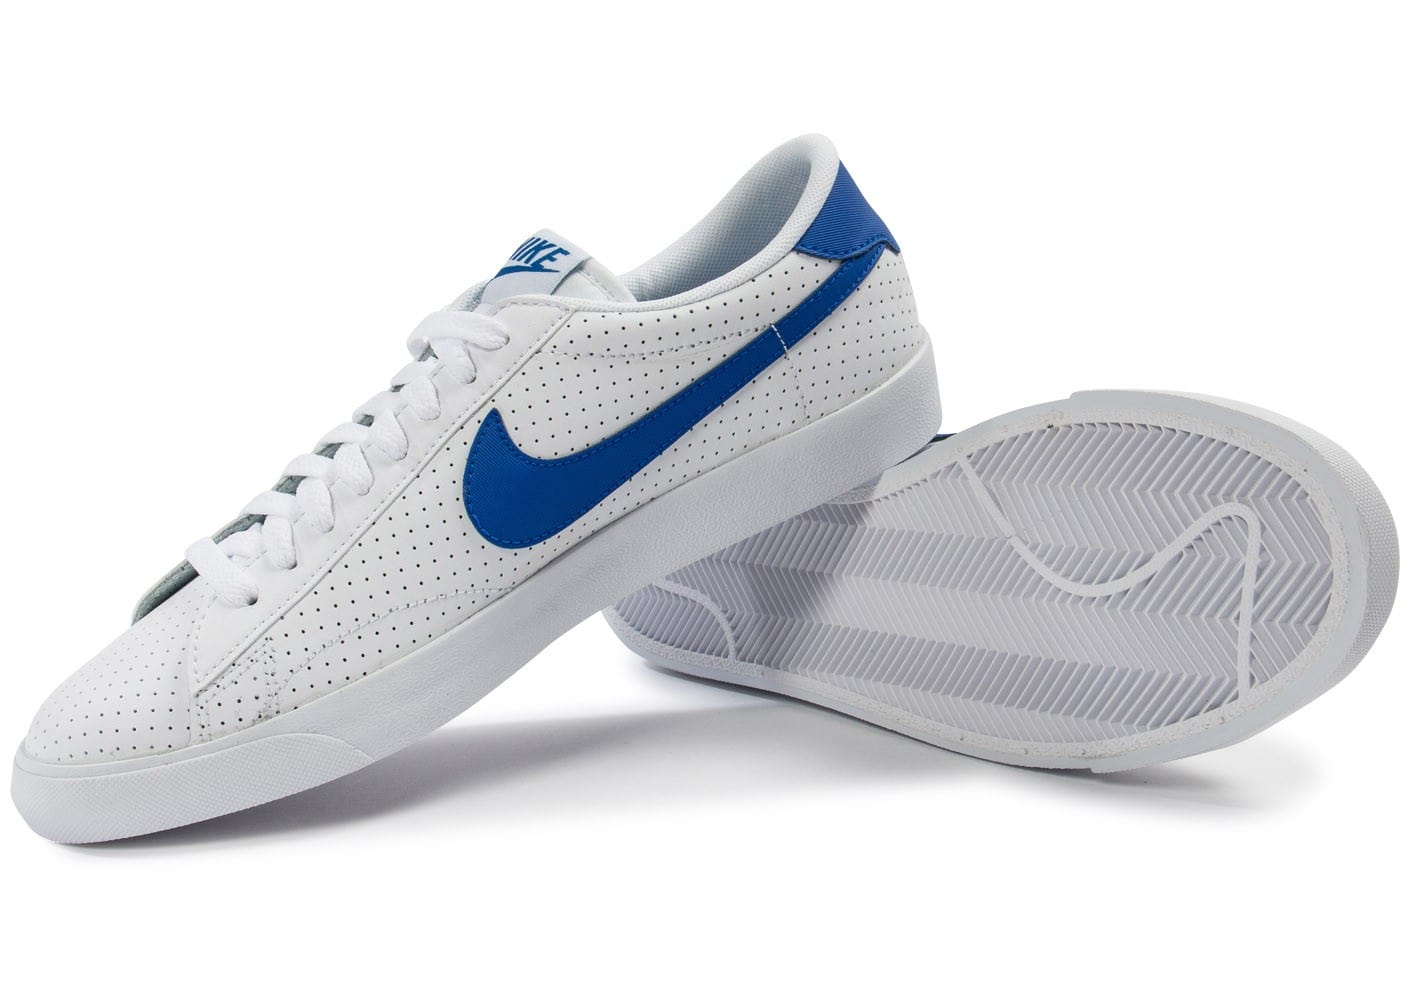 nike jordan homme - Nike Tennis Perf blanche et bleue - Chaussures Homme - Chausport